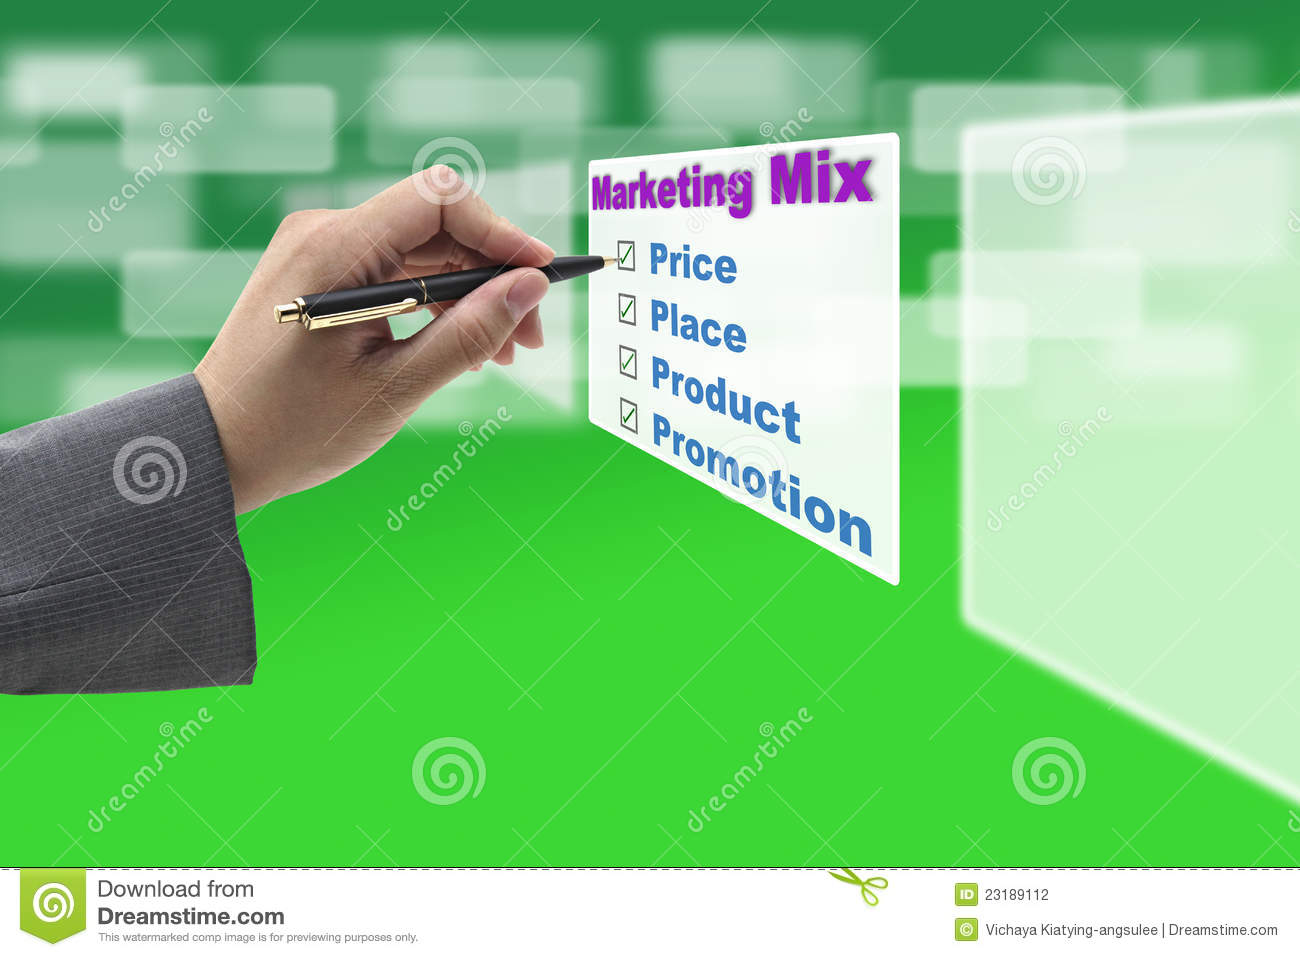 proton company marketing mix Thus, depending on the objectives that the company has, it can change the marketing mix variables (for example, a lower price of a product can be combined with a lower cost for promotion or a better quality product.